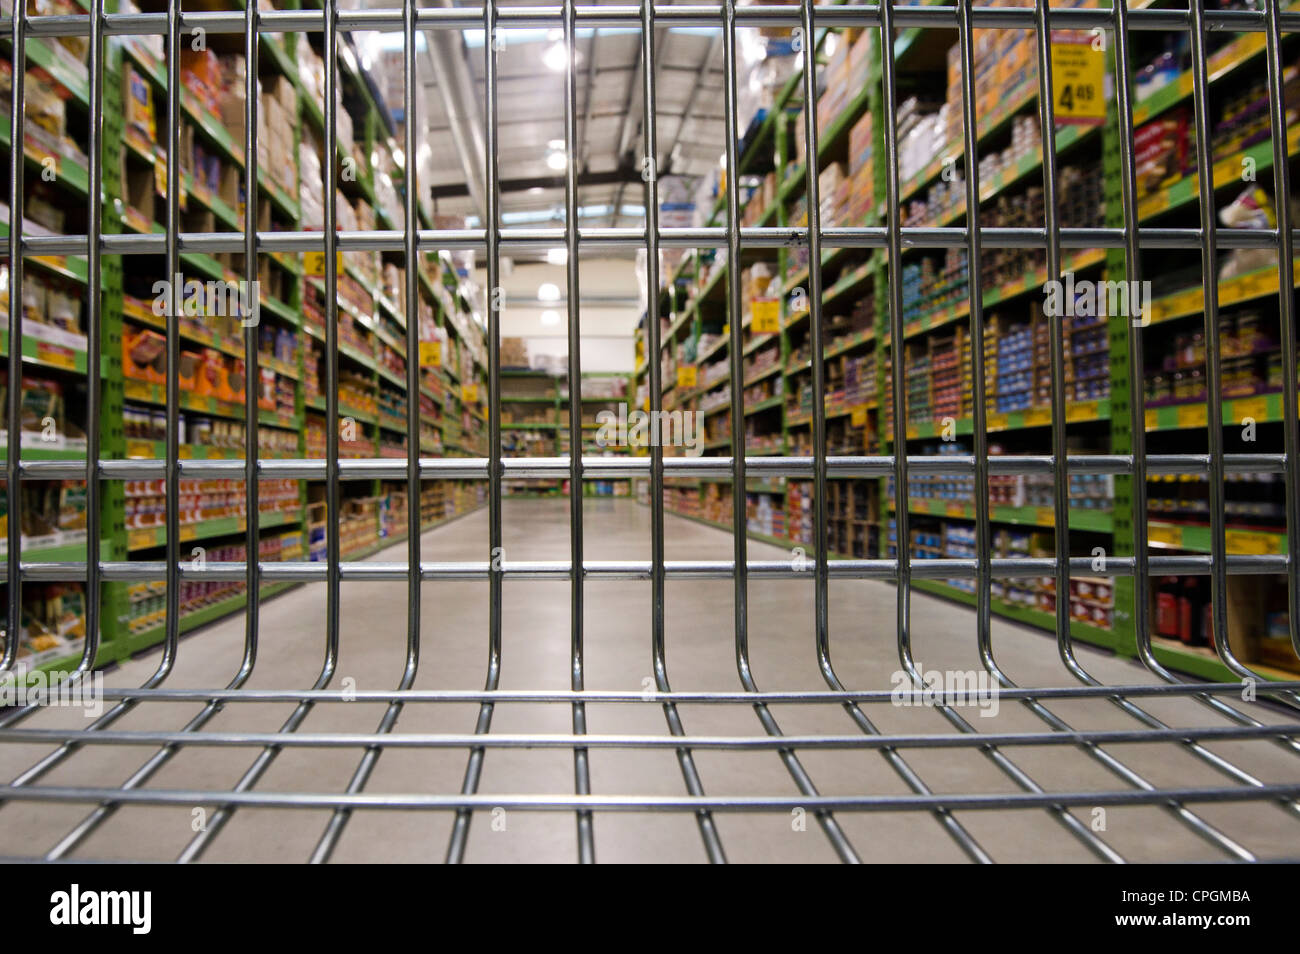 An empty shopping trolley cart in a supermarket. Stock Photo